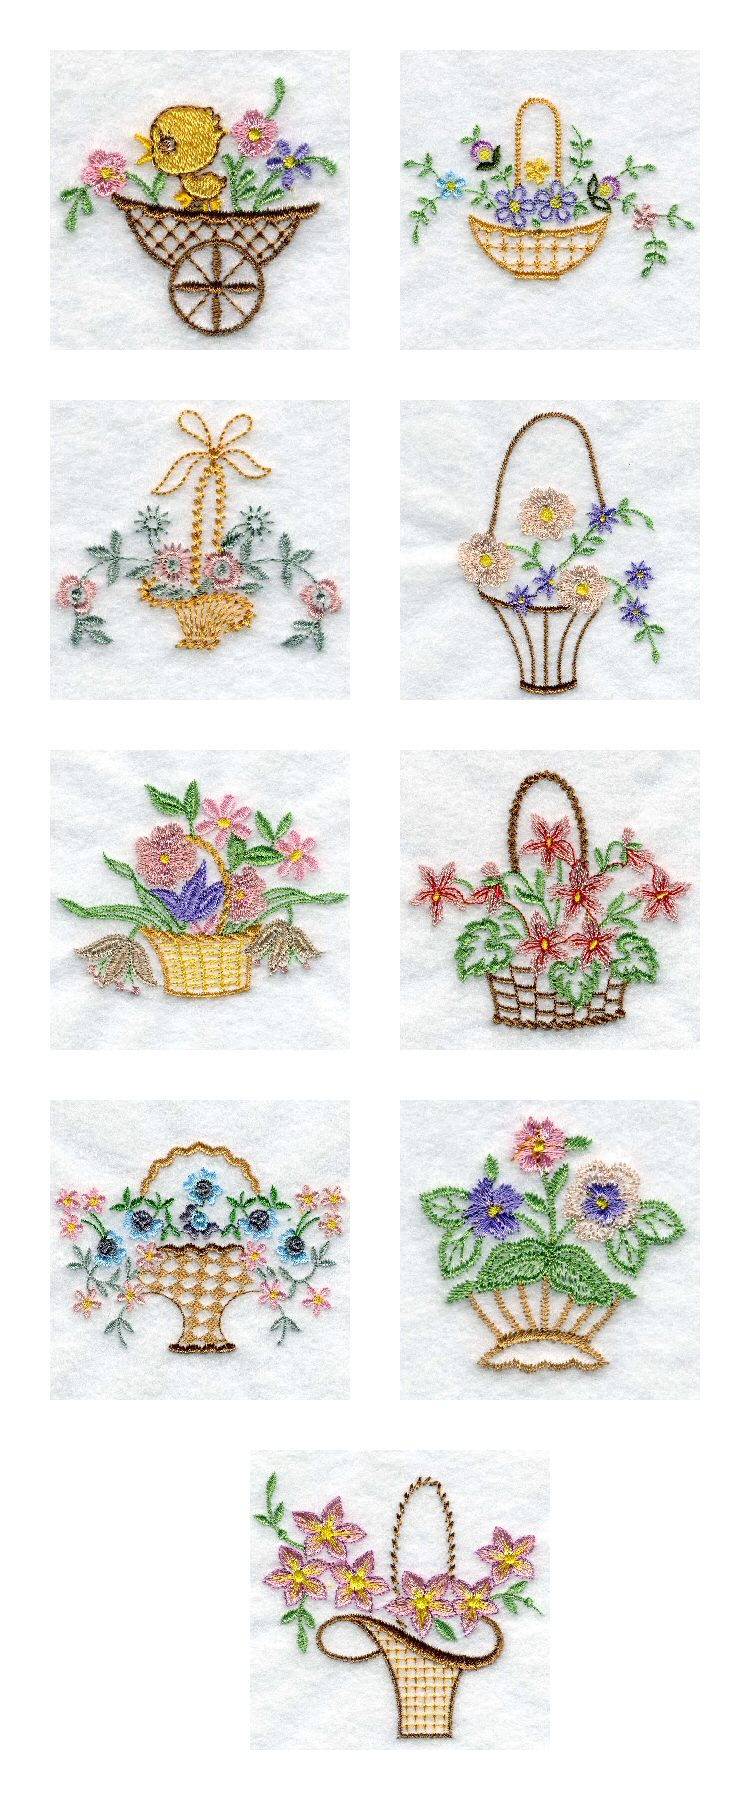 Vintage Baskets 2 Embroidery Machine Design Details